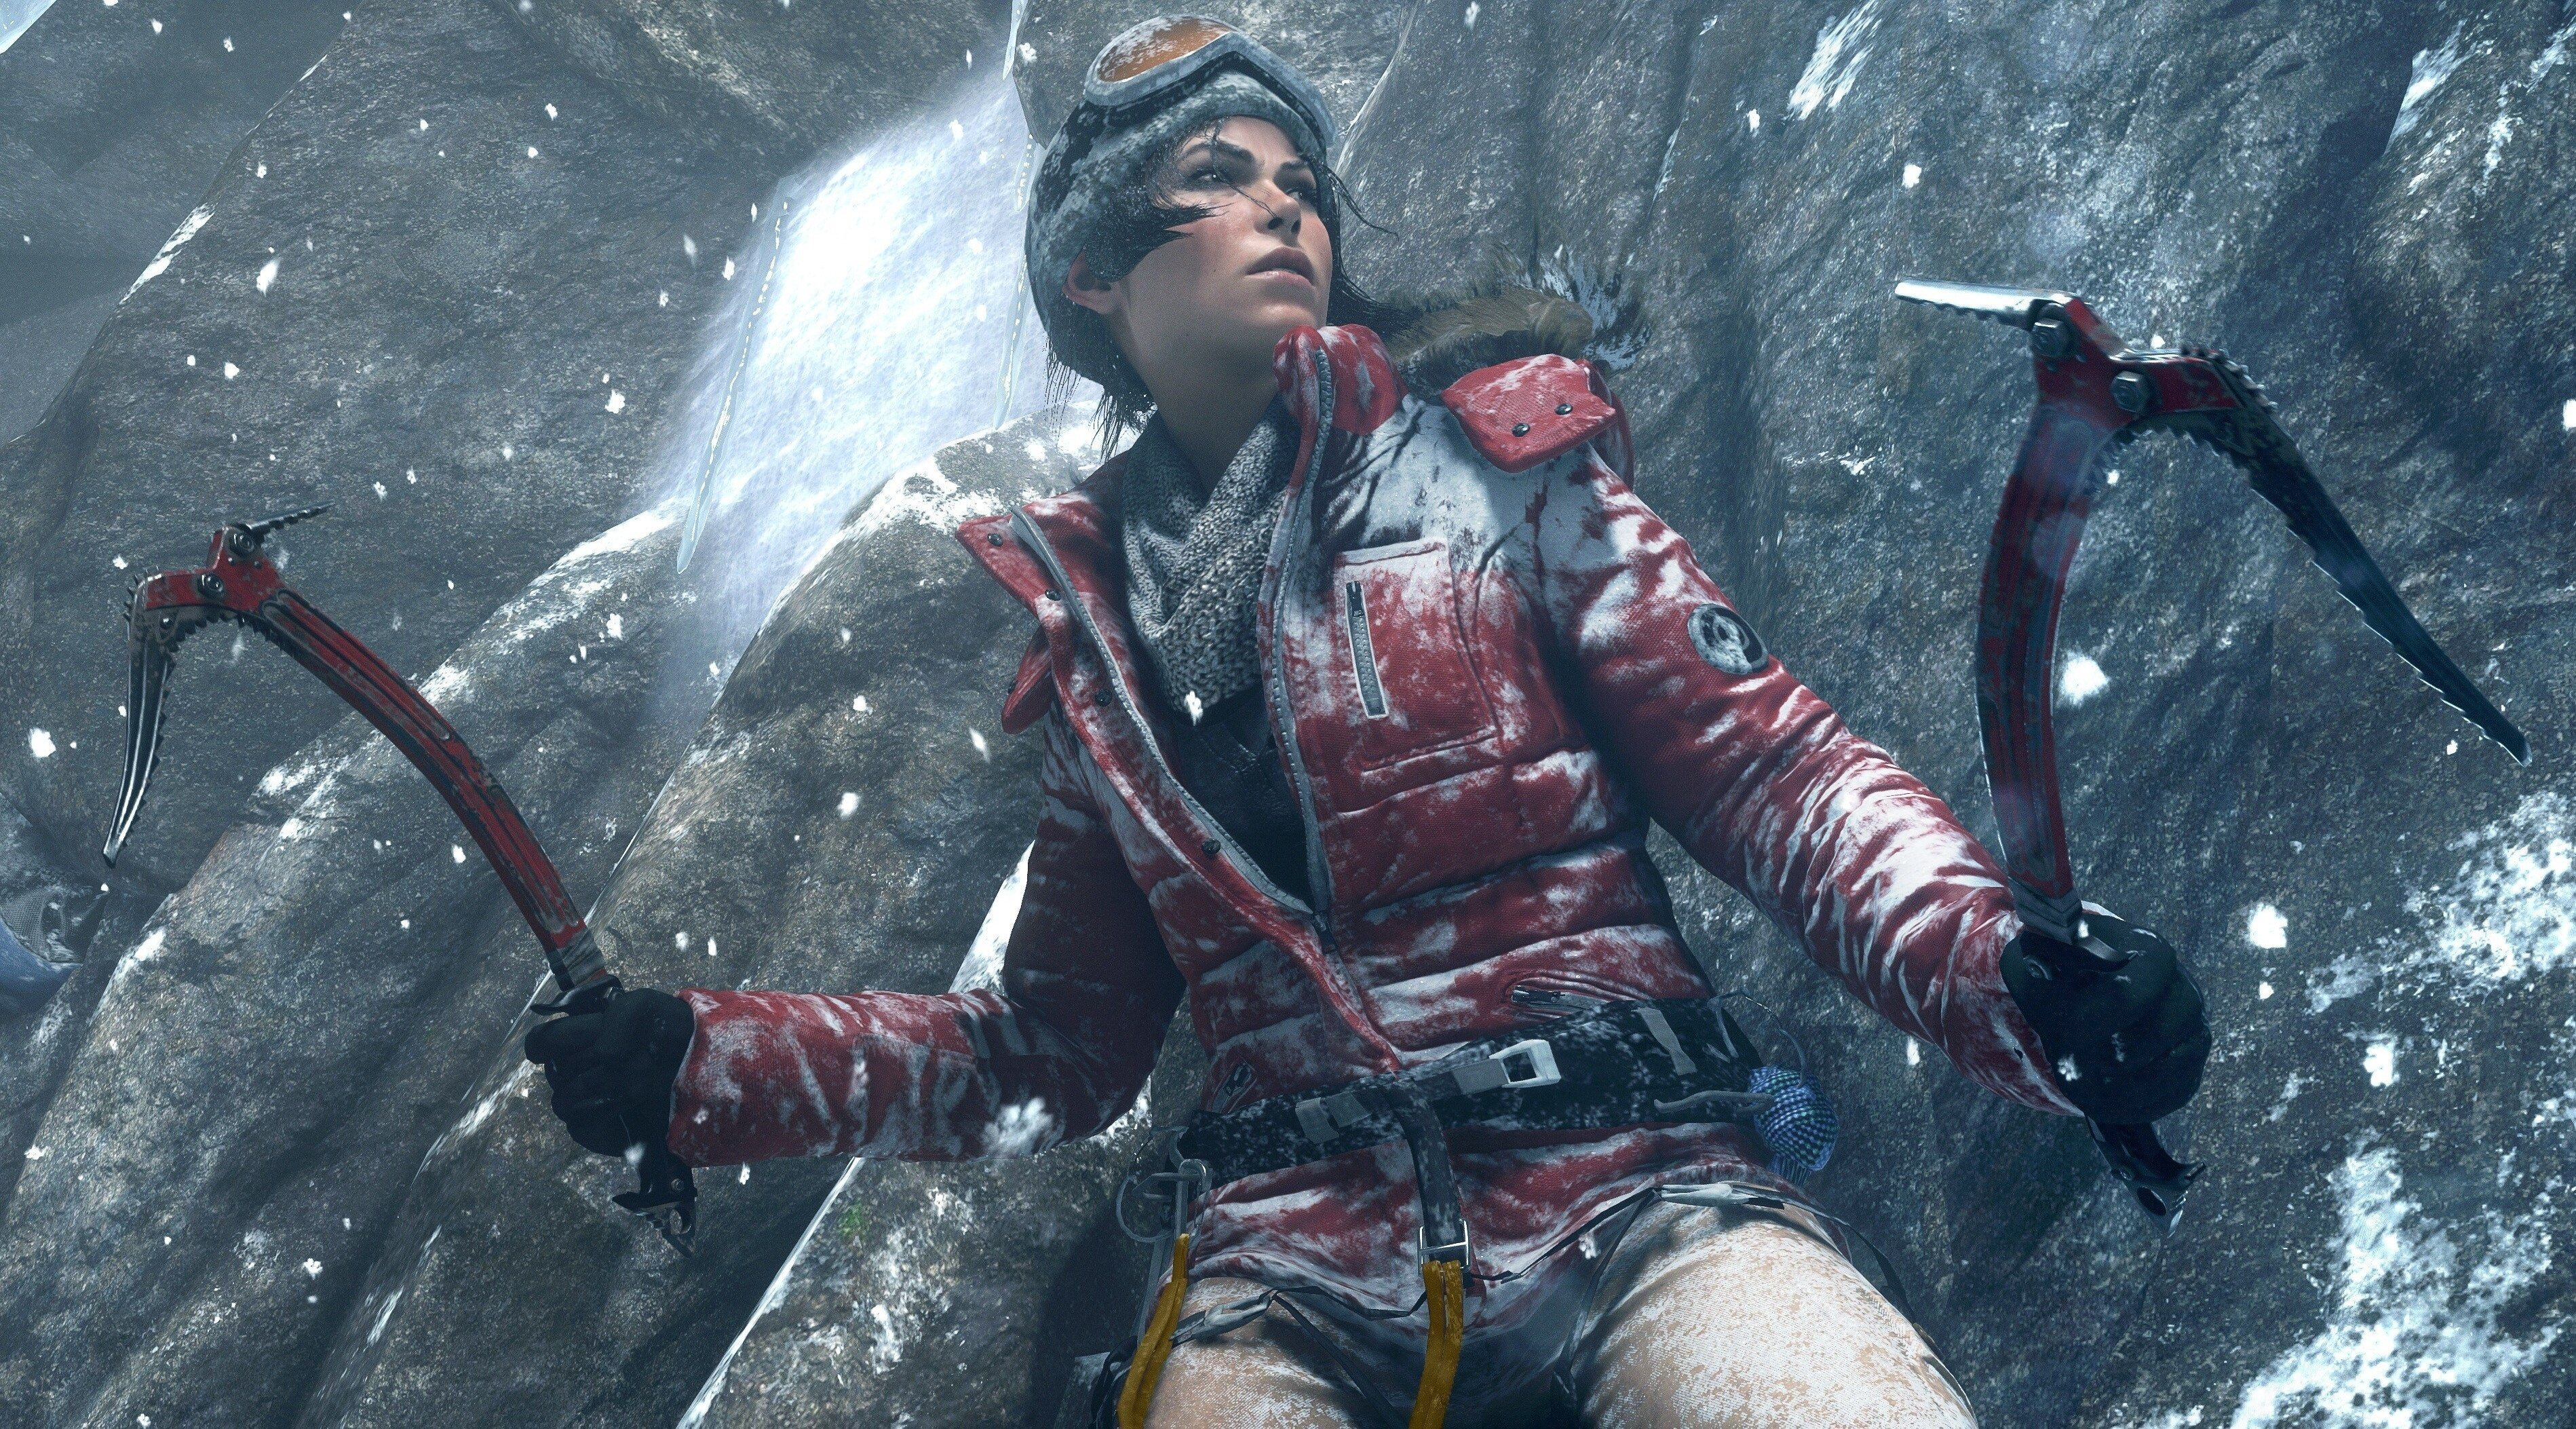 3797x2106 Rise Of The Tomb Raider 4k Pc Wallpaper Download Tomb Raider Wallpaper Rise Of The Tomb Tomb Raider